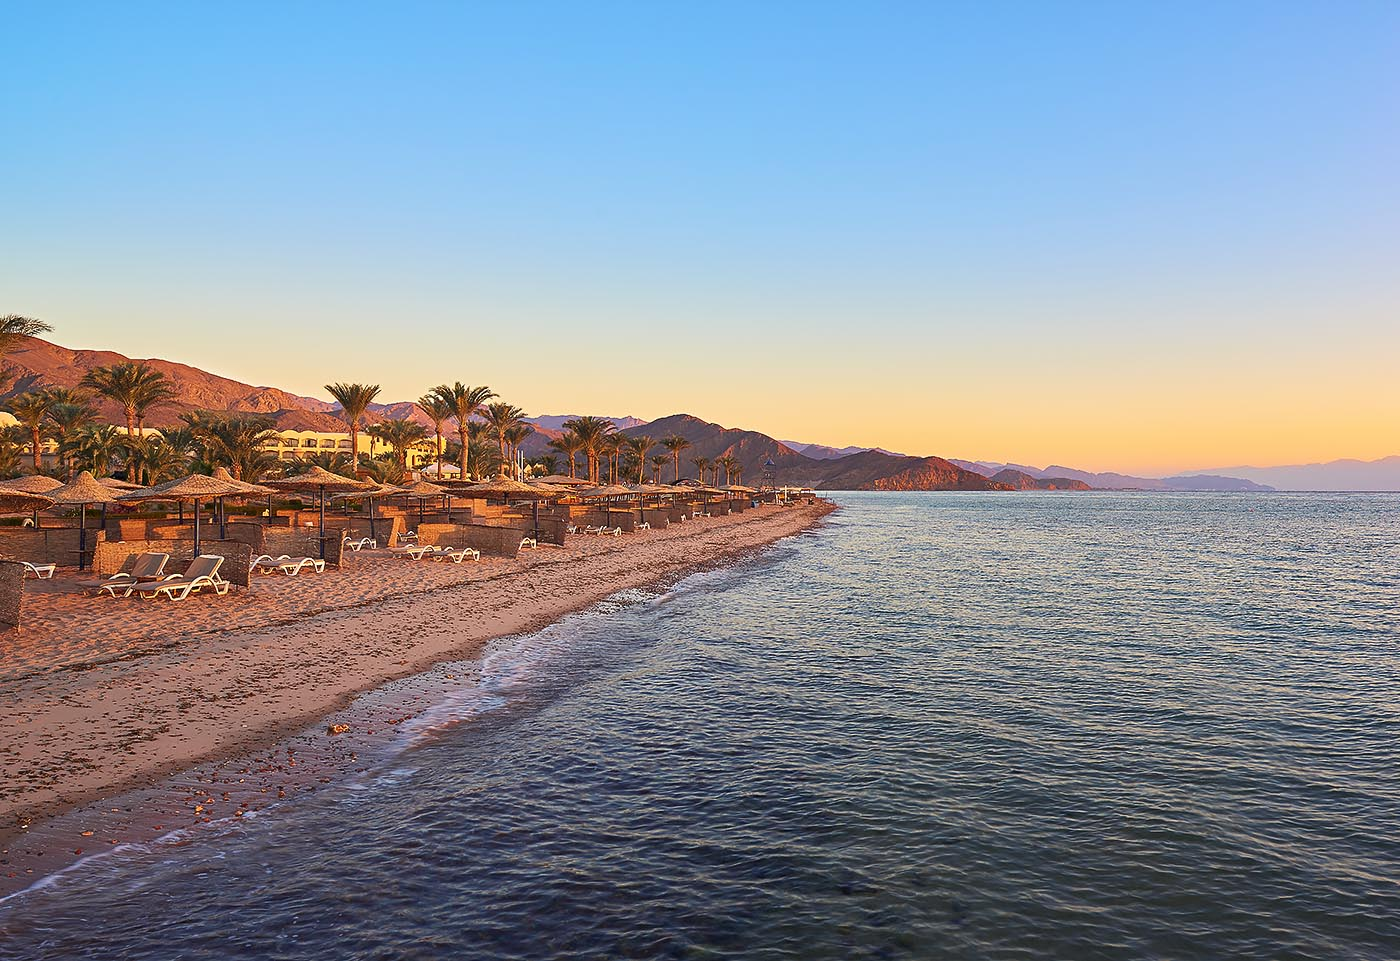 Sofitel Taba heights beach resort - Beach at morning - Mohamed Abdel-Hady Photography